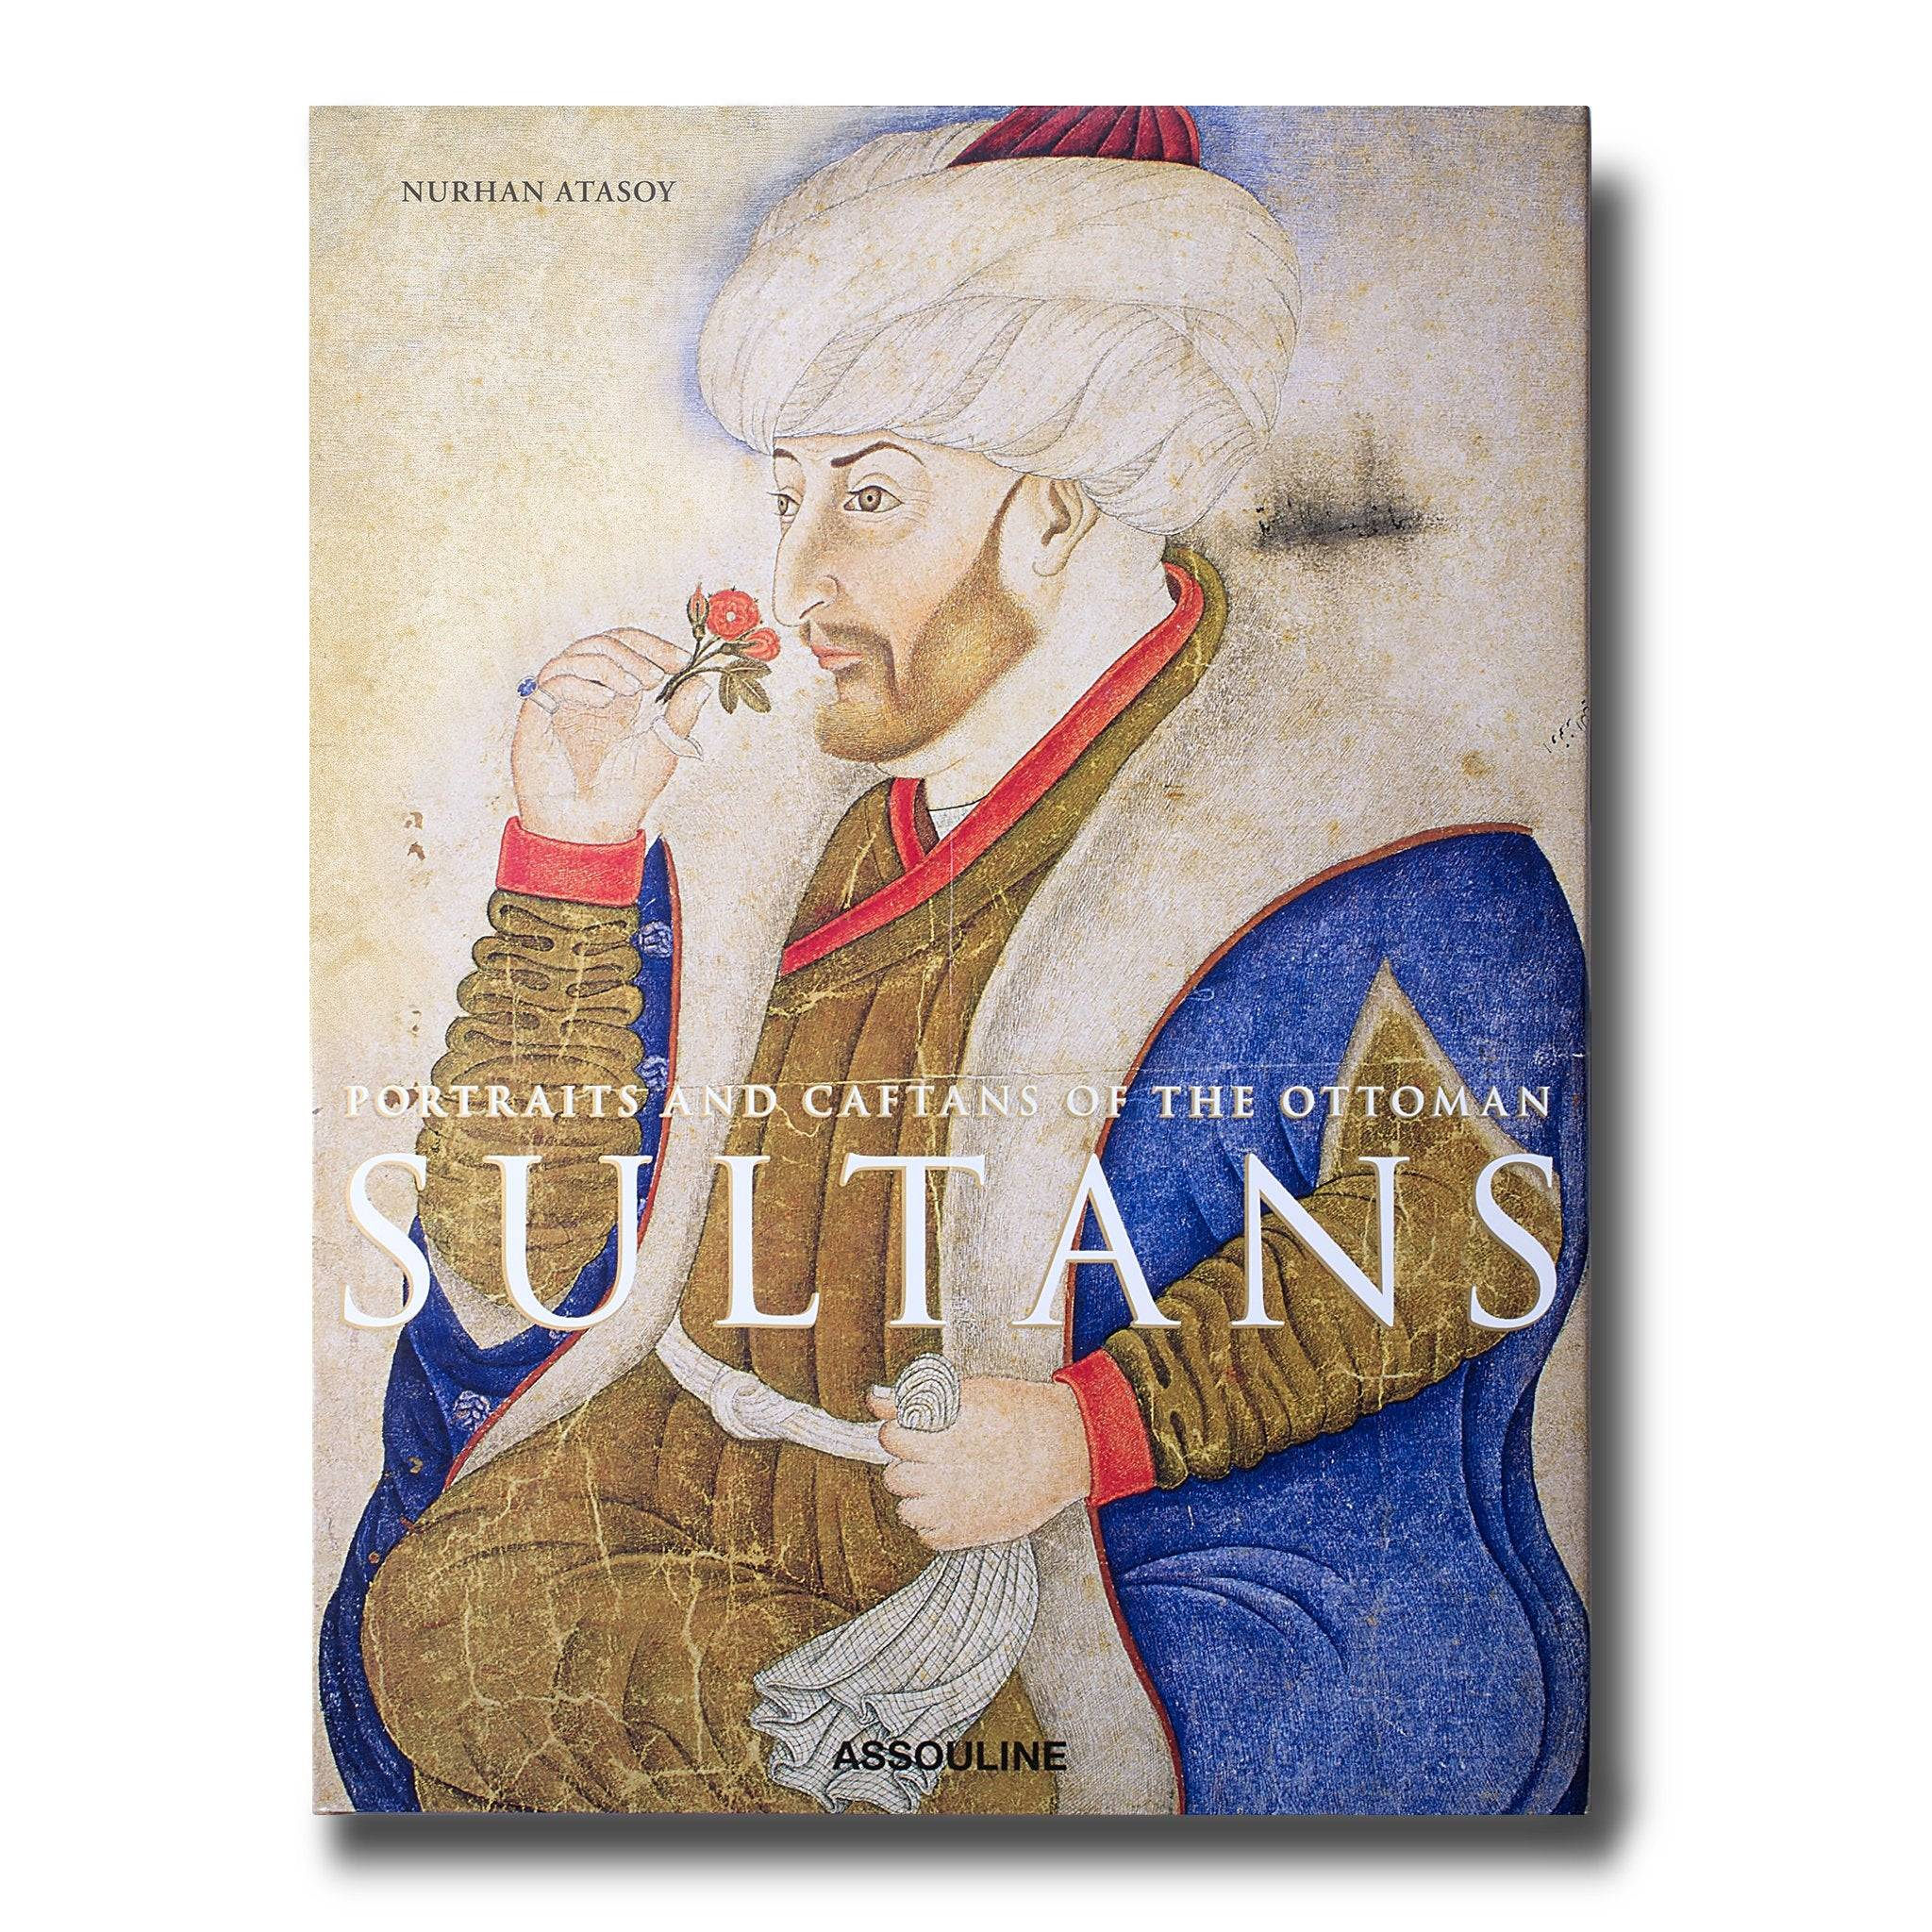 Assouline Portraits and Caftans of The Ottoman Sultans